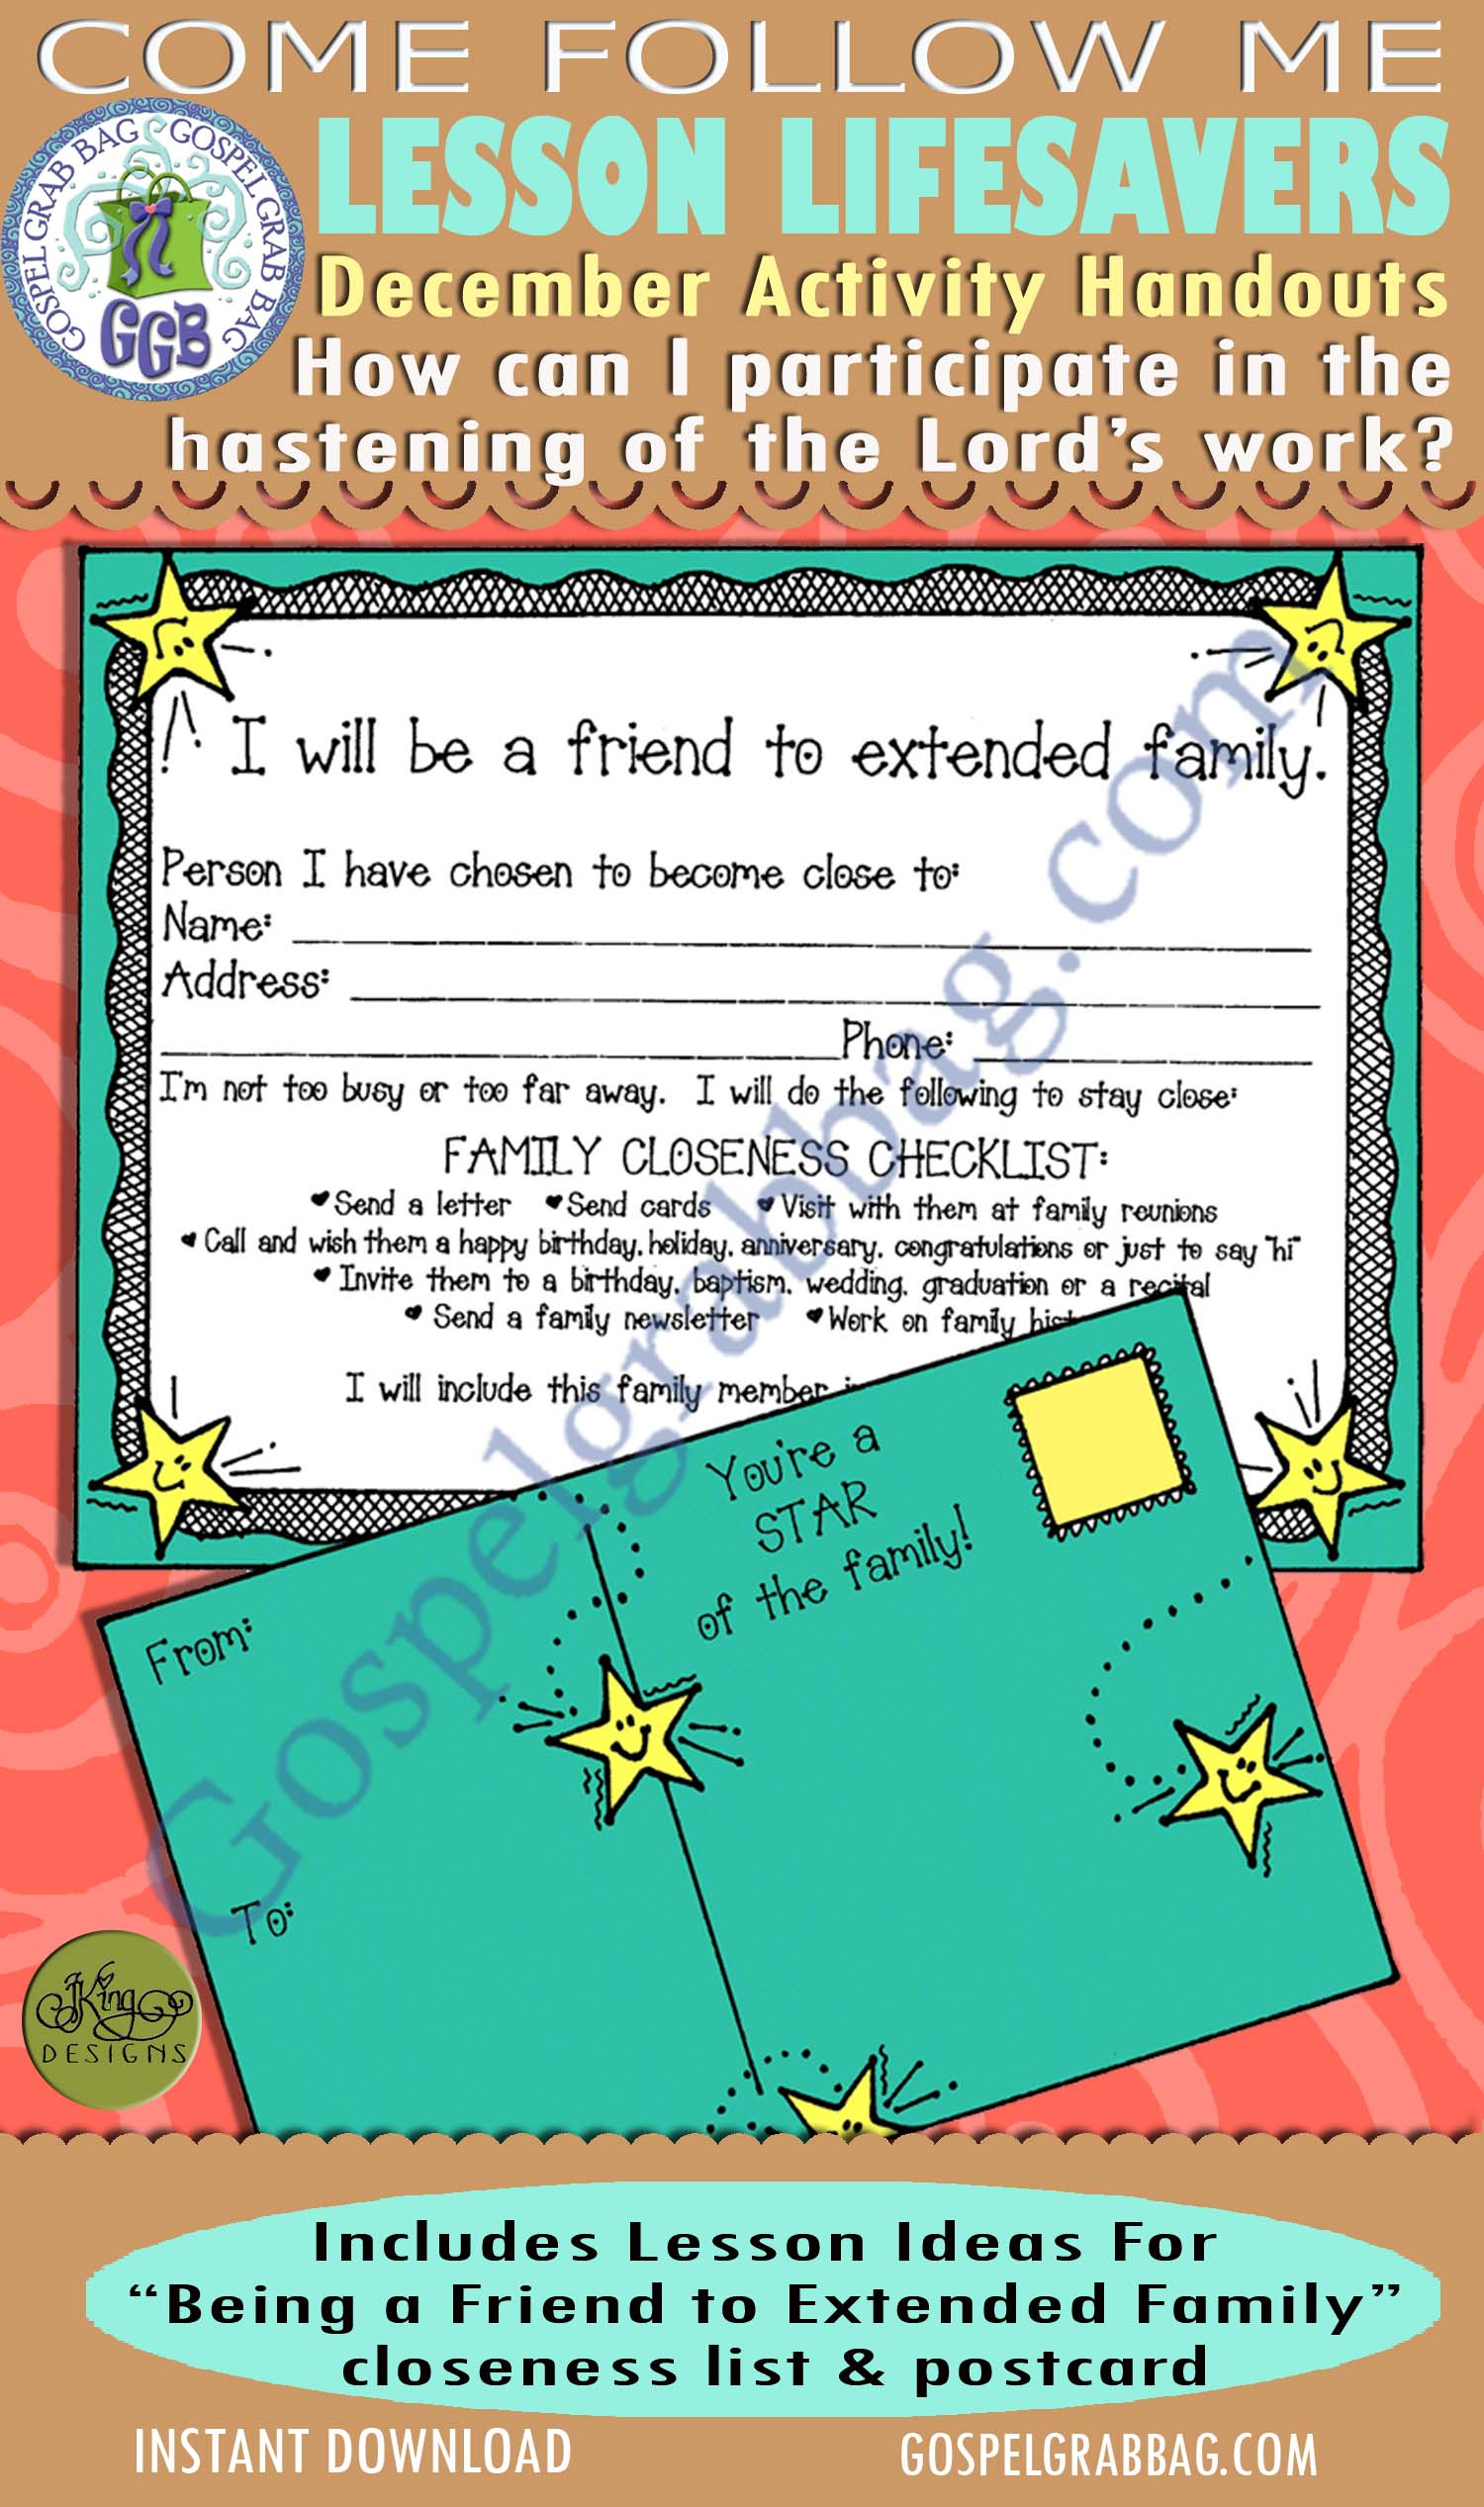 "$1.75 December Lesson 7 - Come Follow Me ""How can I participate in the hastening of the Lord's work?"" ACTIVITY: Being a Friend to Extended Family Closeness checklist and postcard"